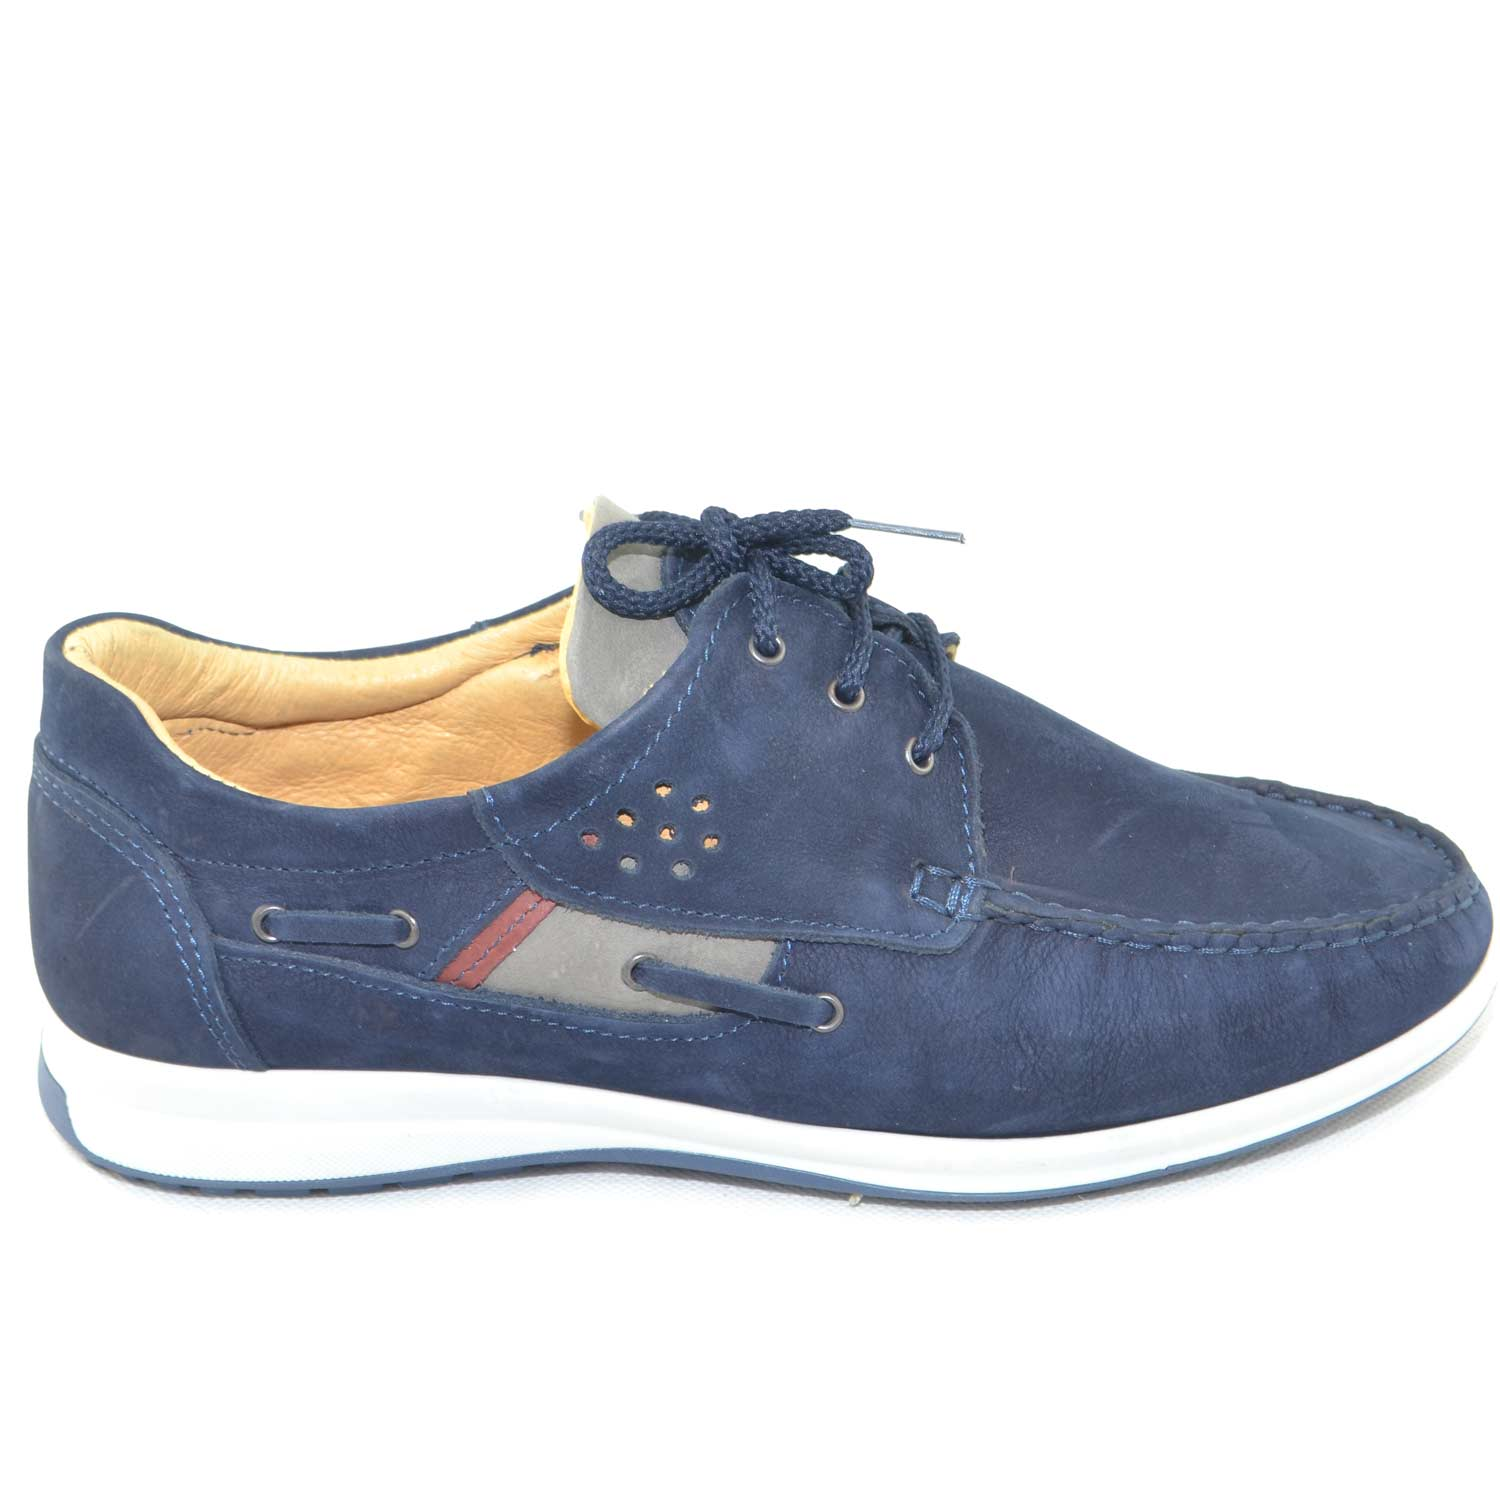 Scarpa  uomo interland man casual made in italy scarpa interland comfort in vera pelle di nabuk blu fondo antiscivolo